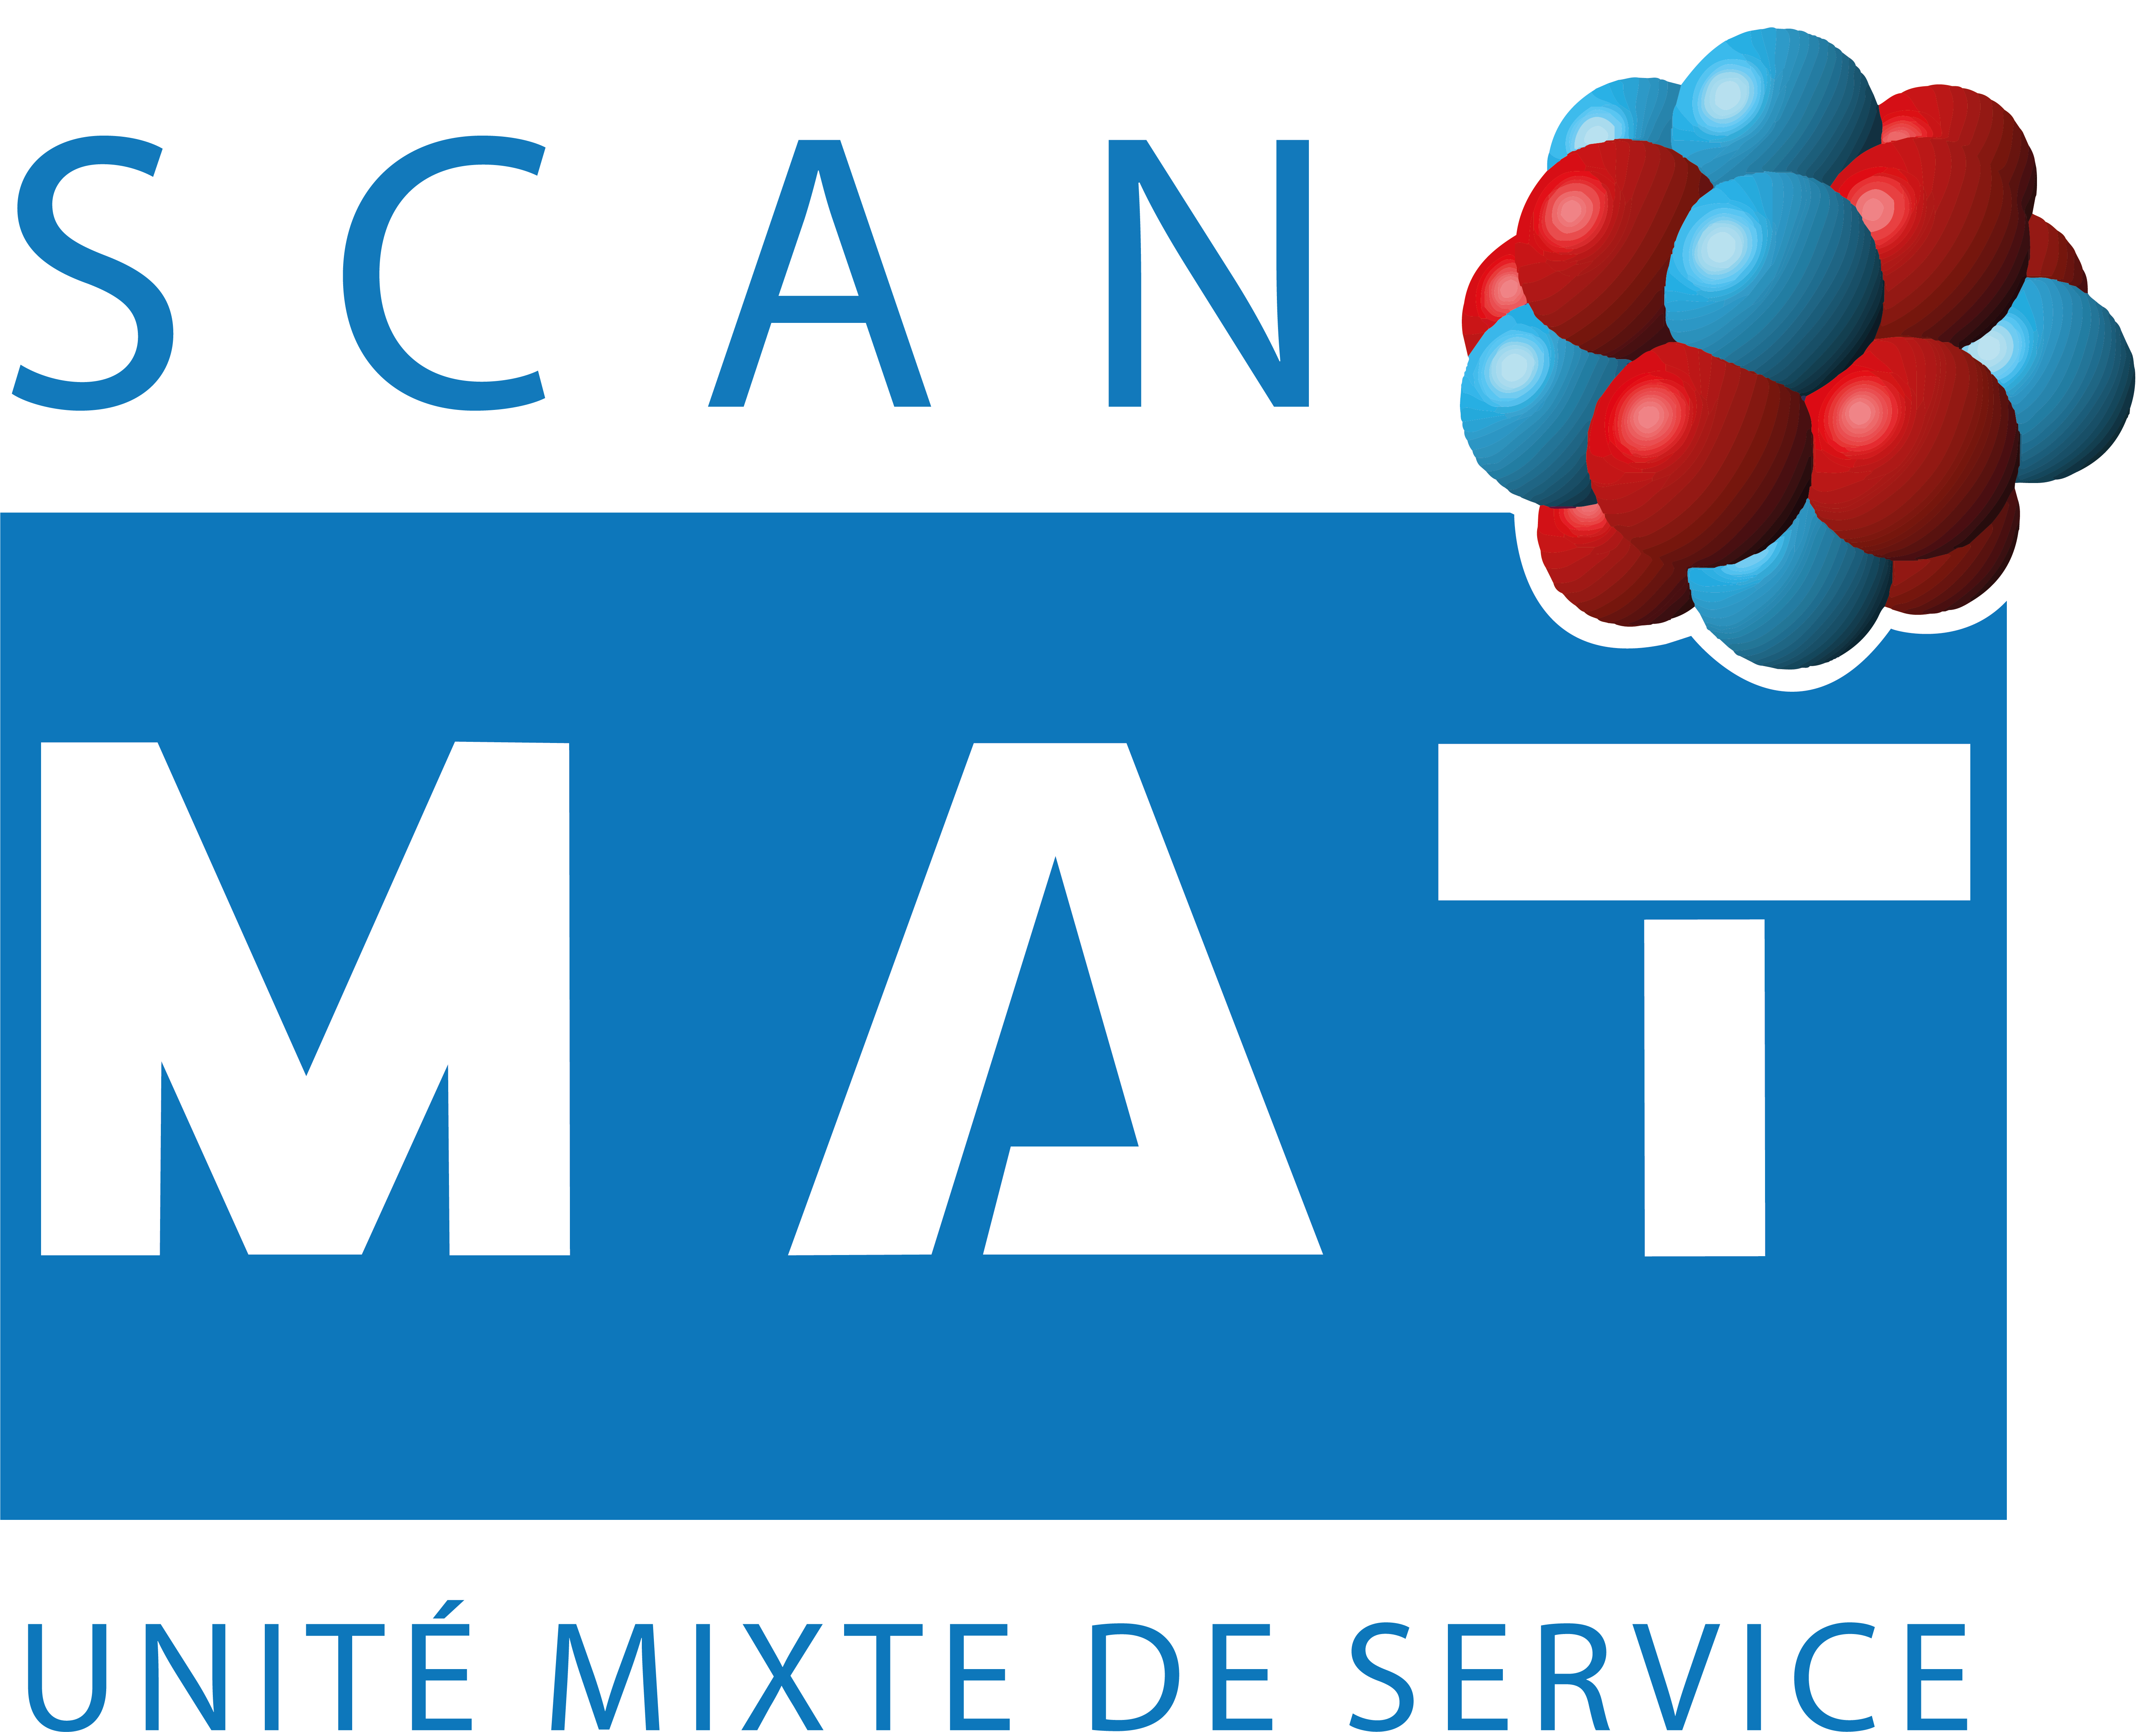 Scanmat logo